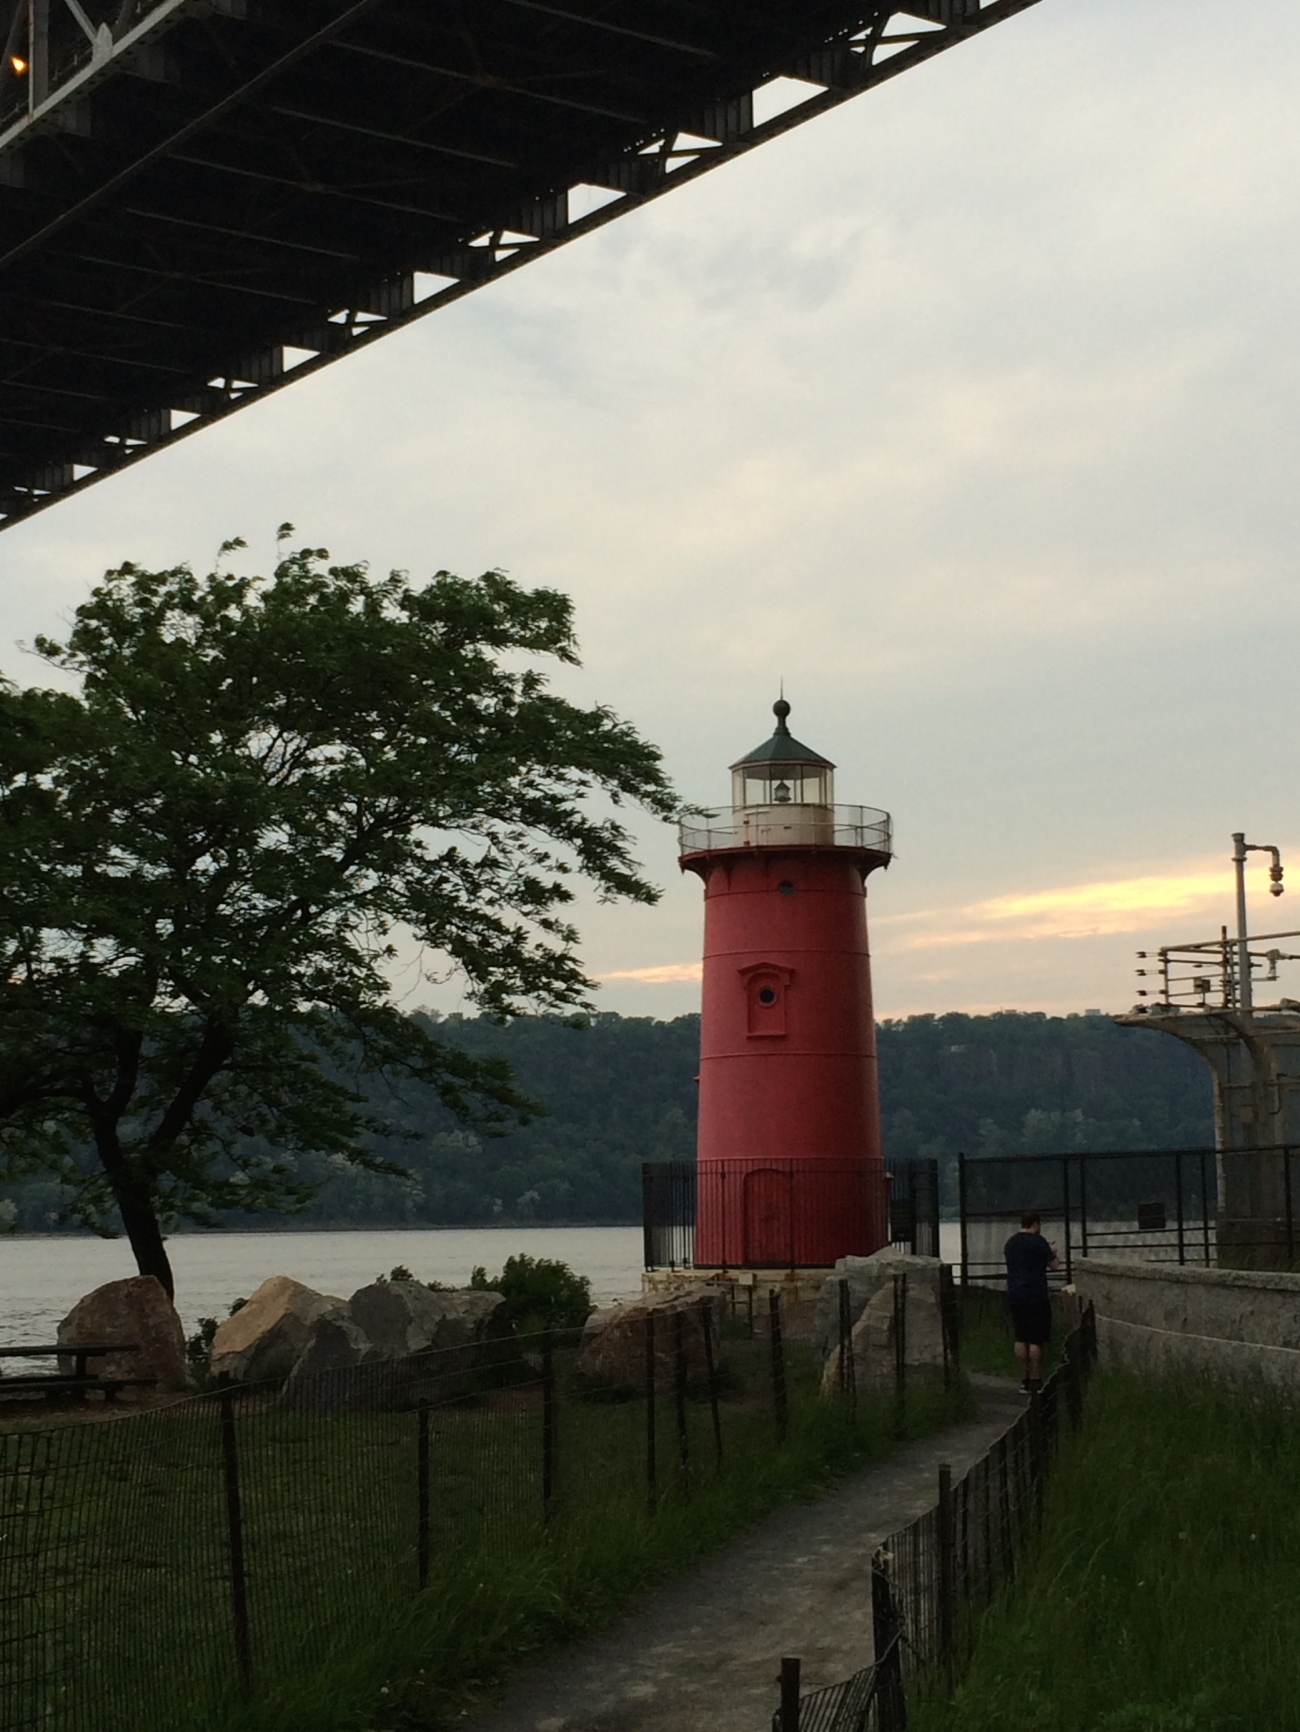 The Little Red Lighthouse At Sunset